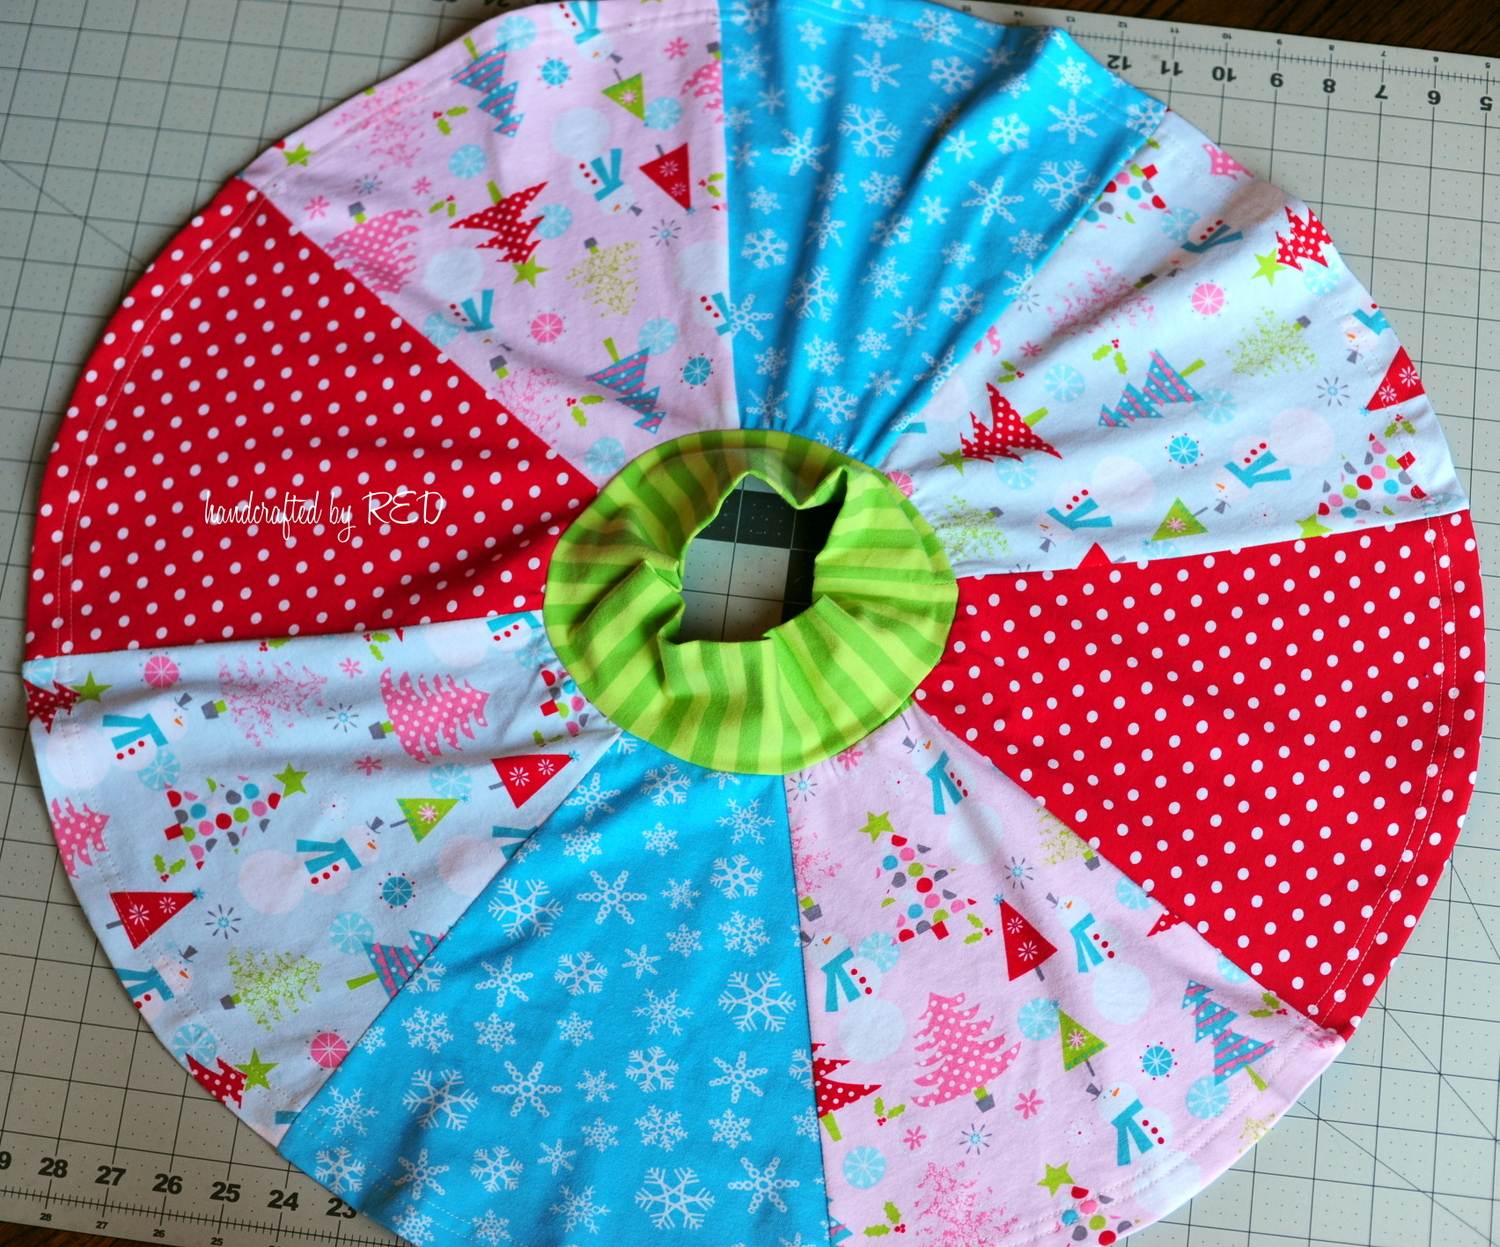 Sew a paneled circle skirt for your girl and her doll too sew a paneled circle skirt for your girl and her doll too peek a boo pages sew something special bankloansurffo Image collections